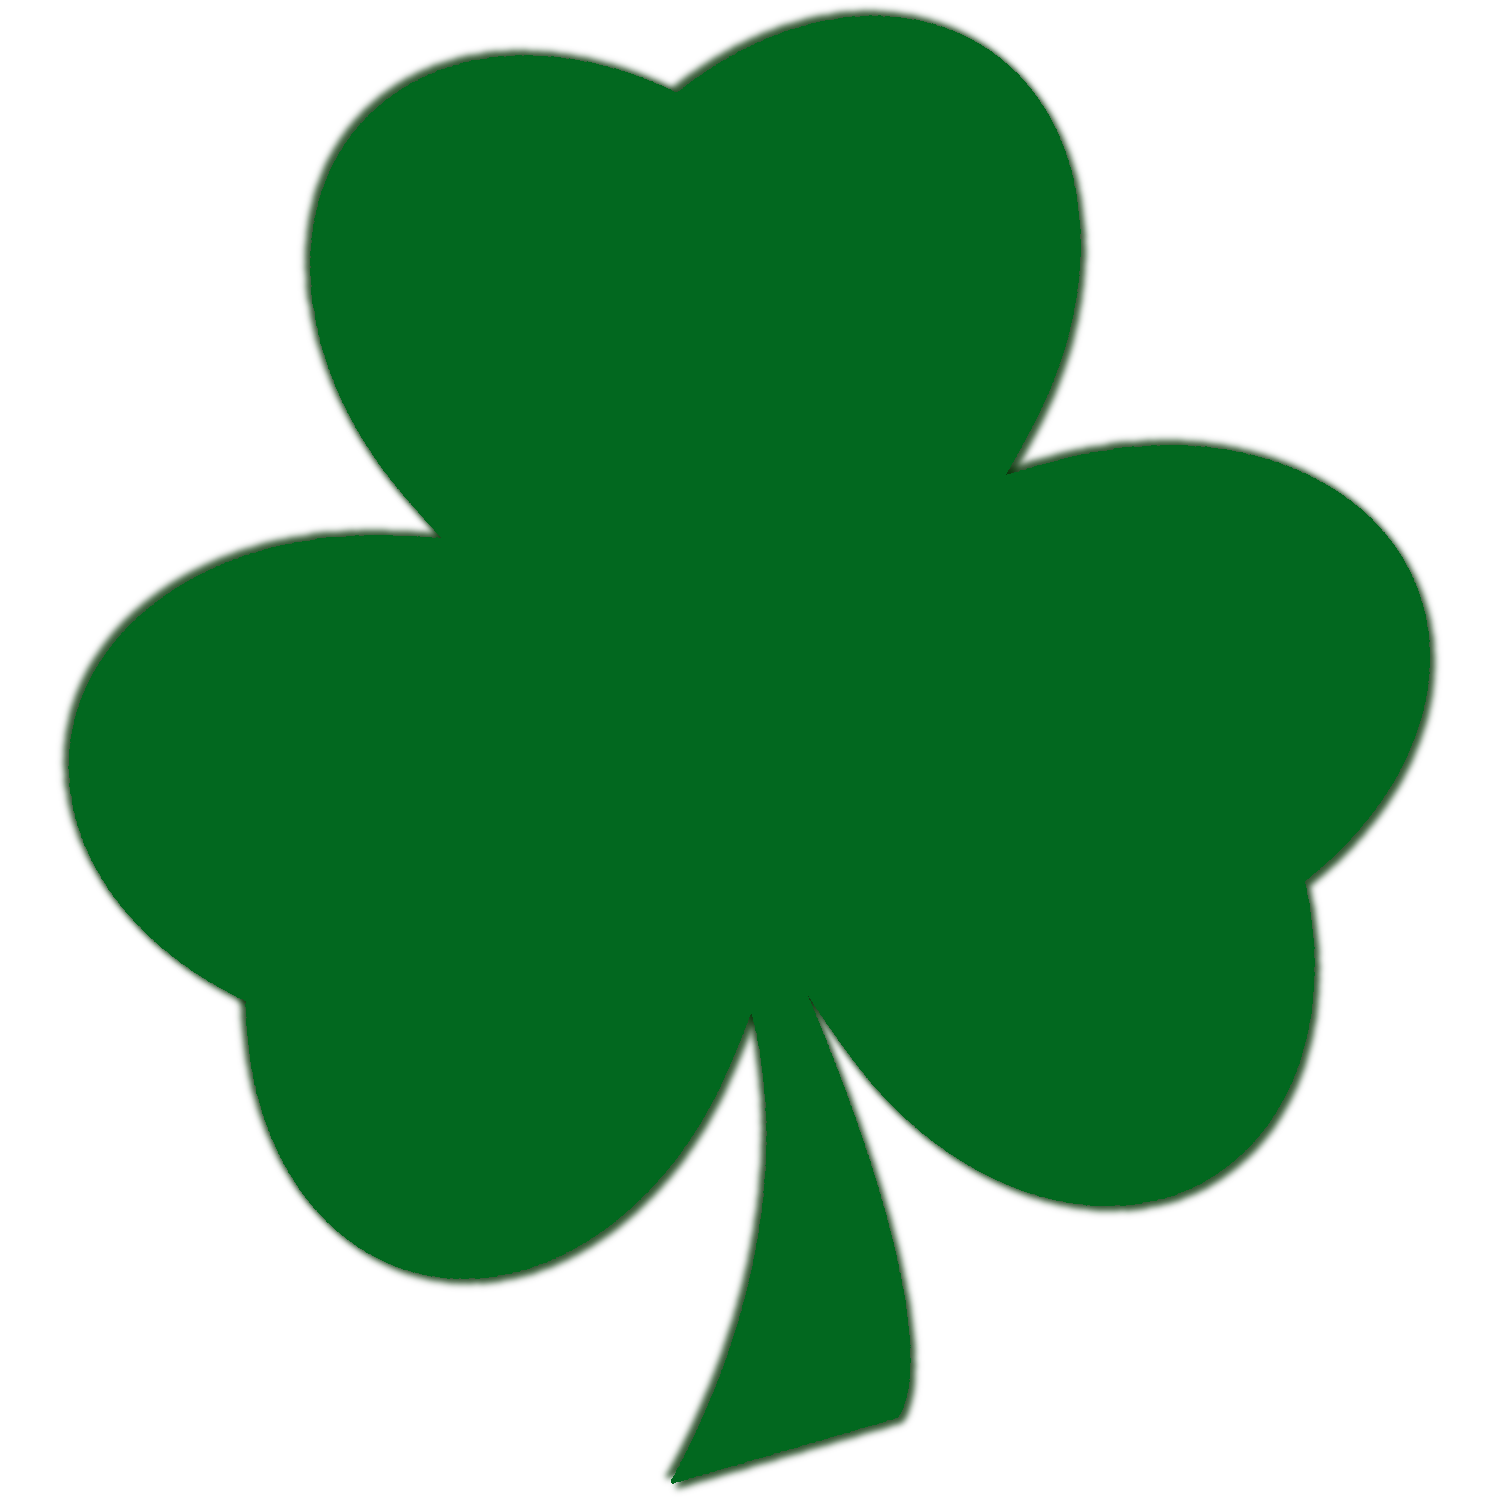 Free Irish Clover, Download Free Clip Art, Free Clip Art on.